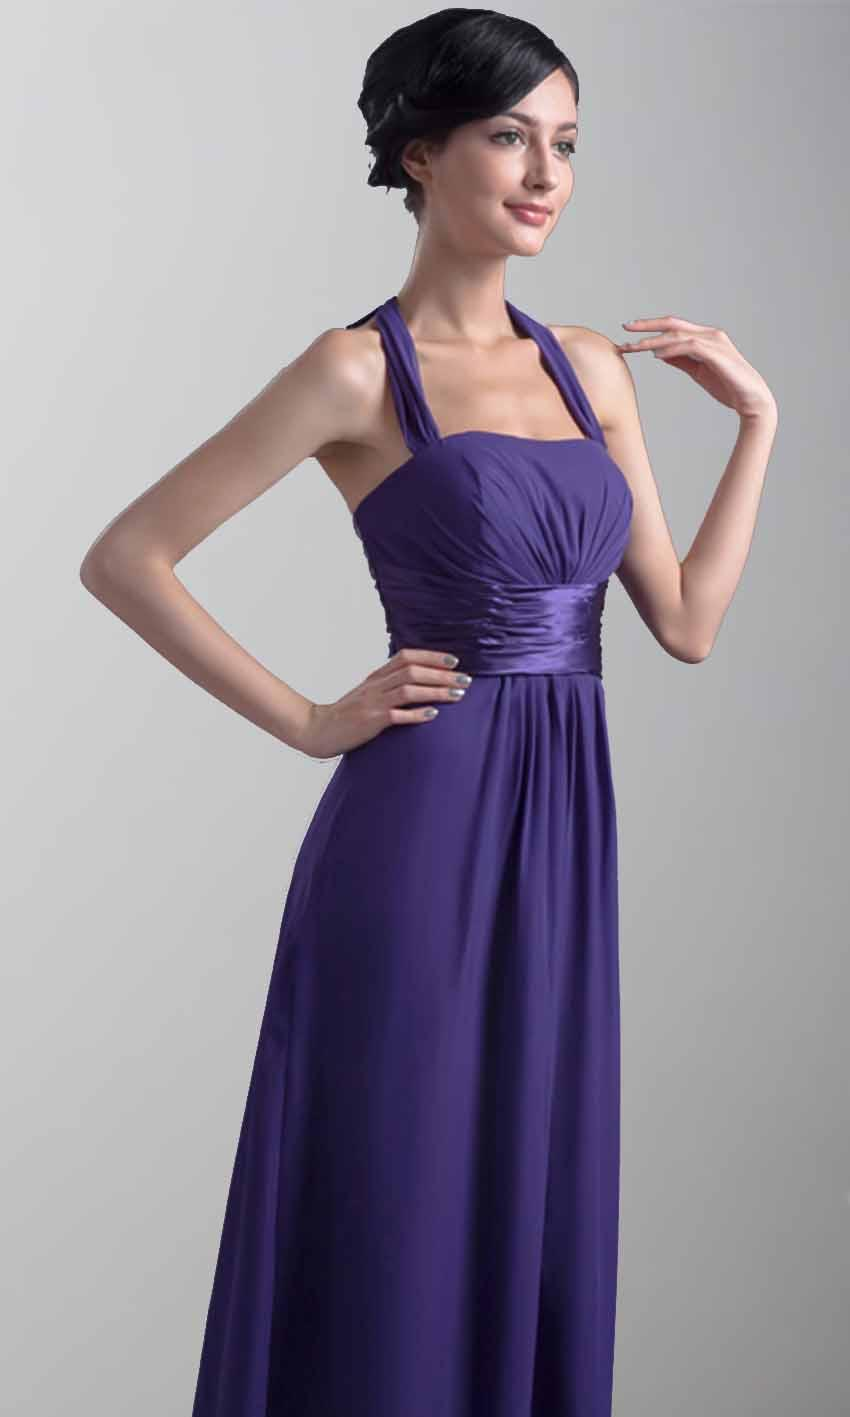 Elegant Purple Halter Long Bridesmaid Dresses KSP382 [KSP382 ...